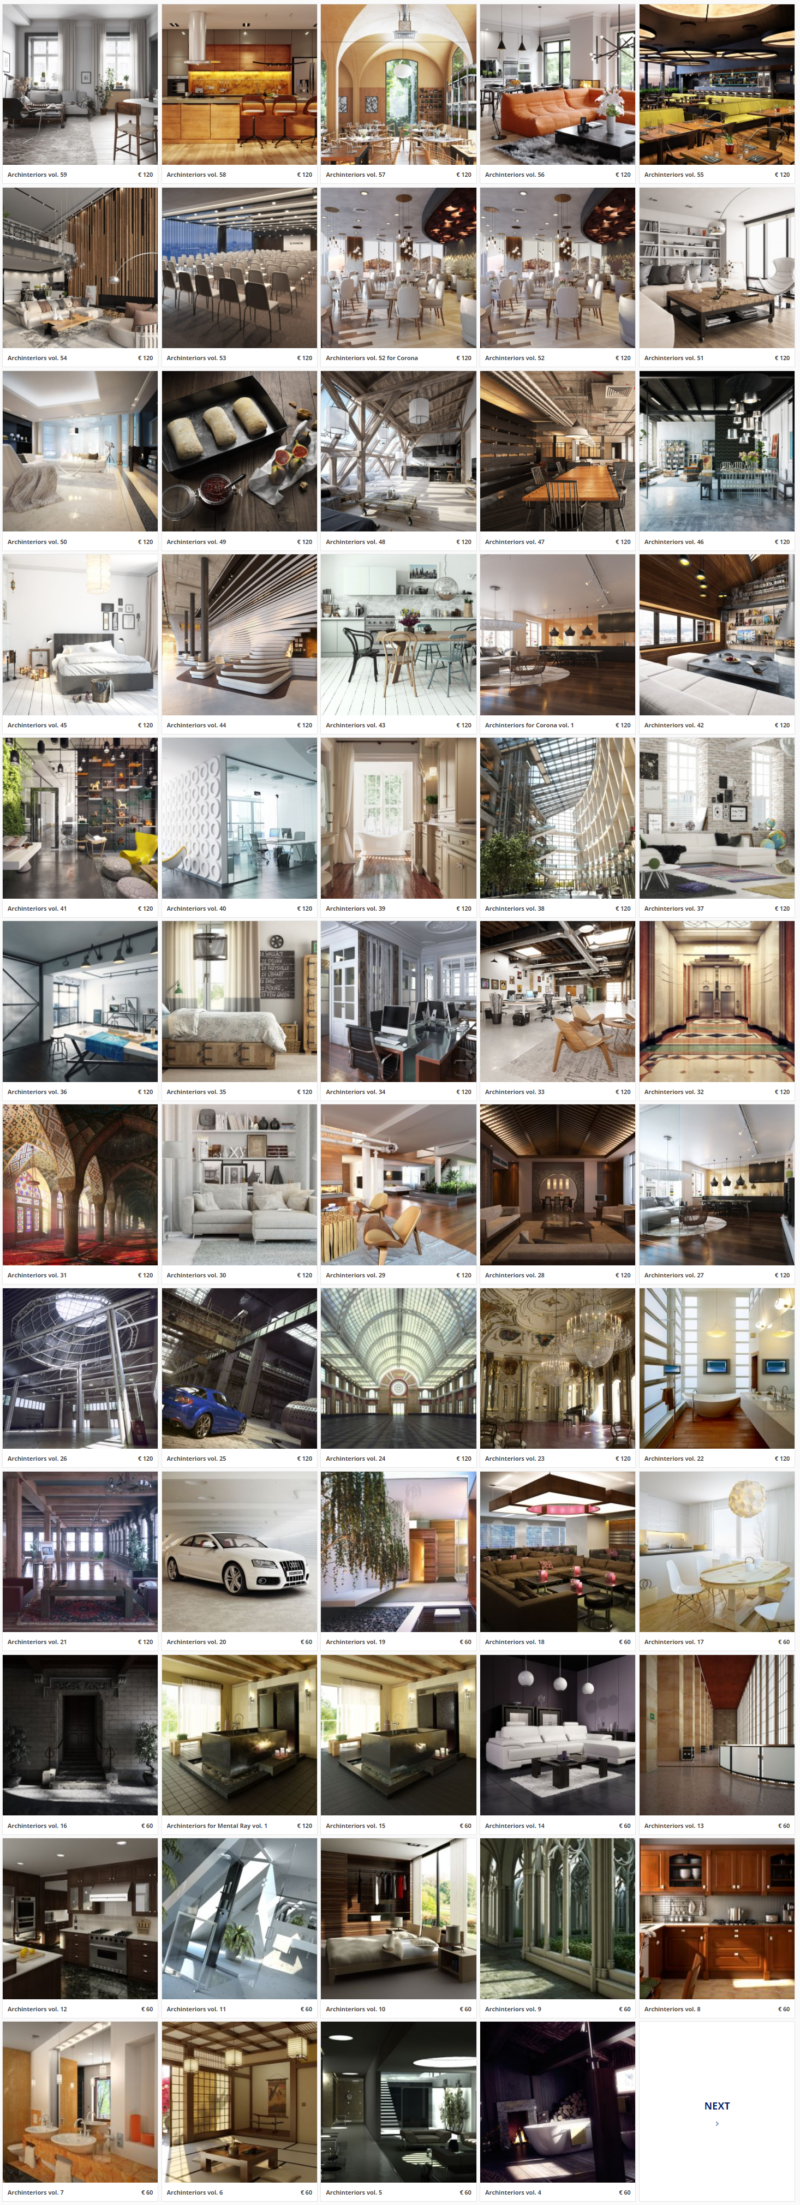 Evermotion Archinteriors Full Collection   File Nội thất 3dsmax Full Setting - Ánh sáng